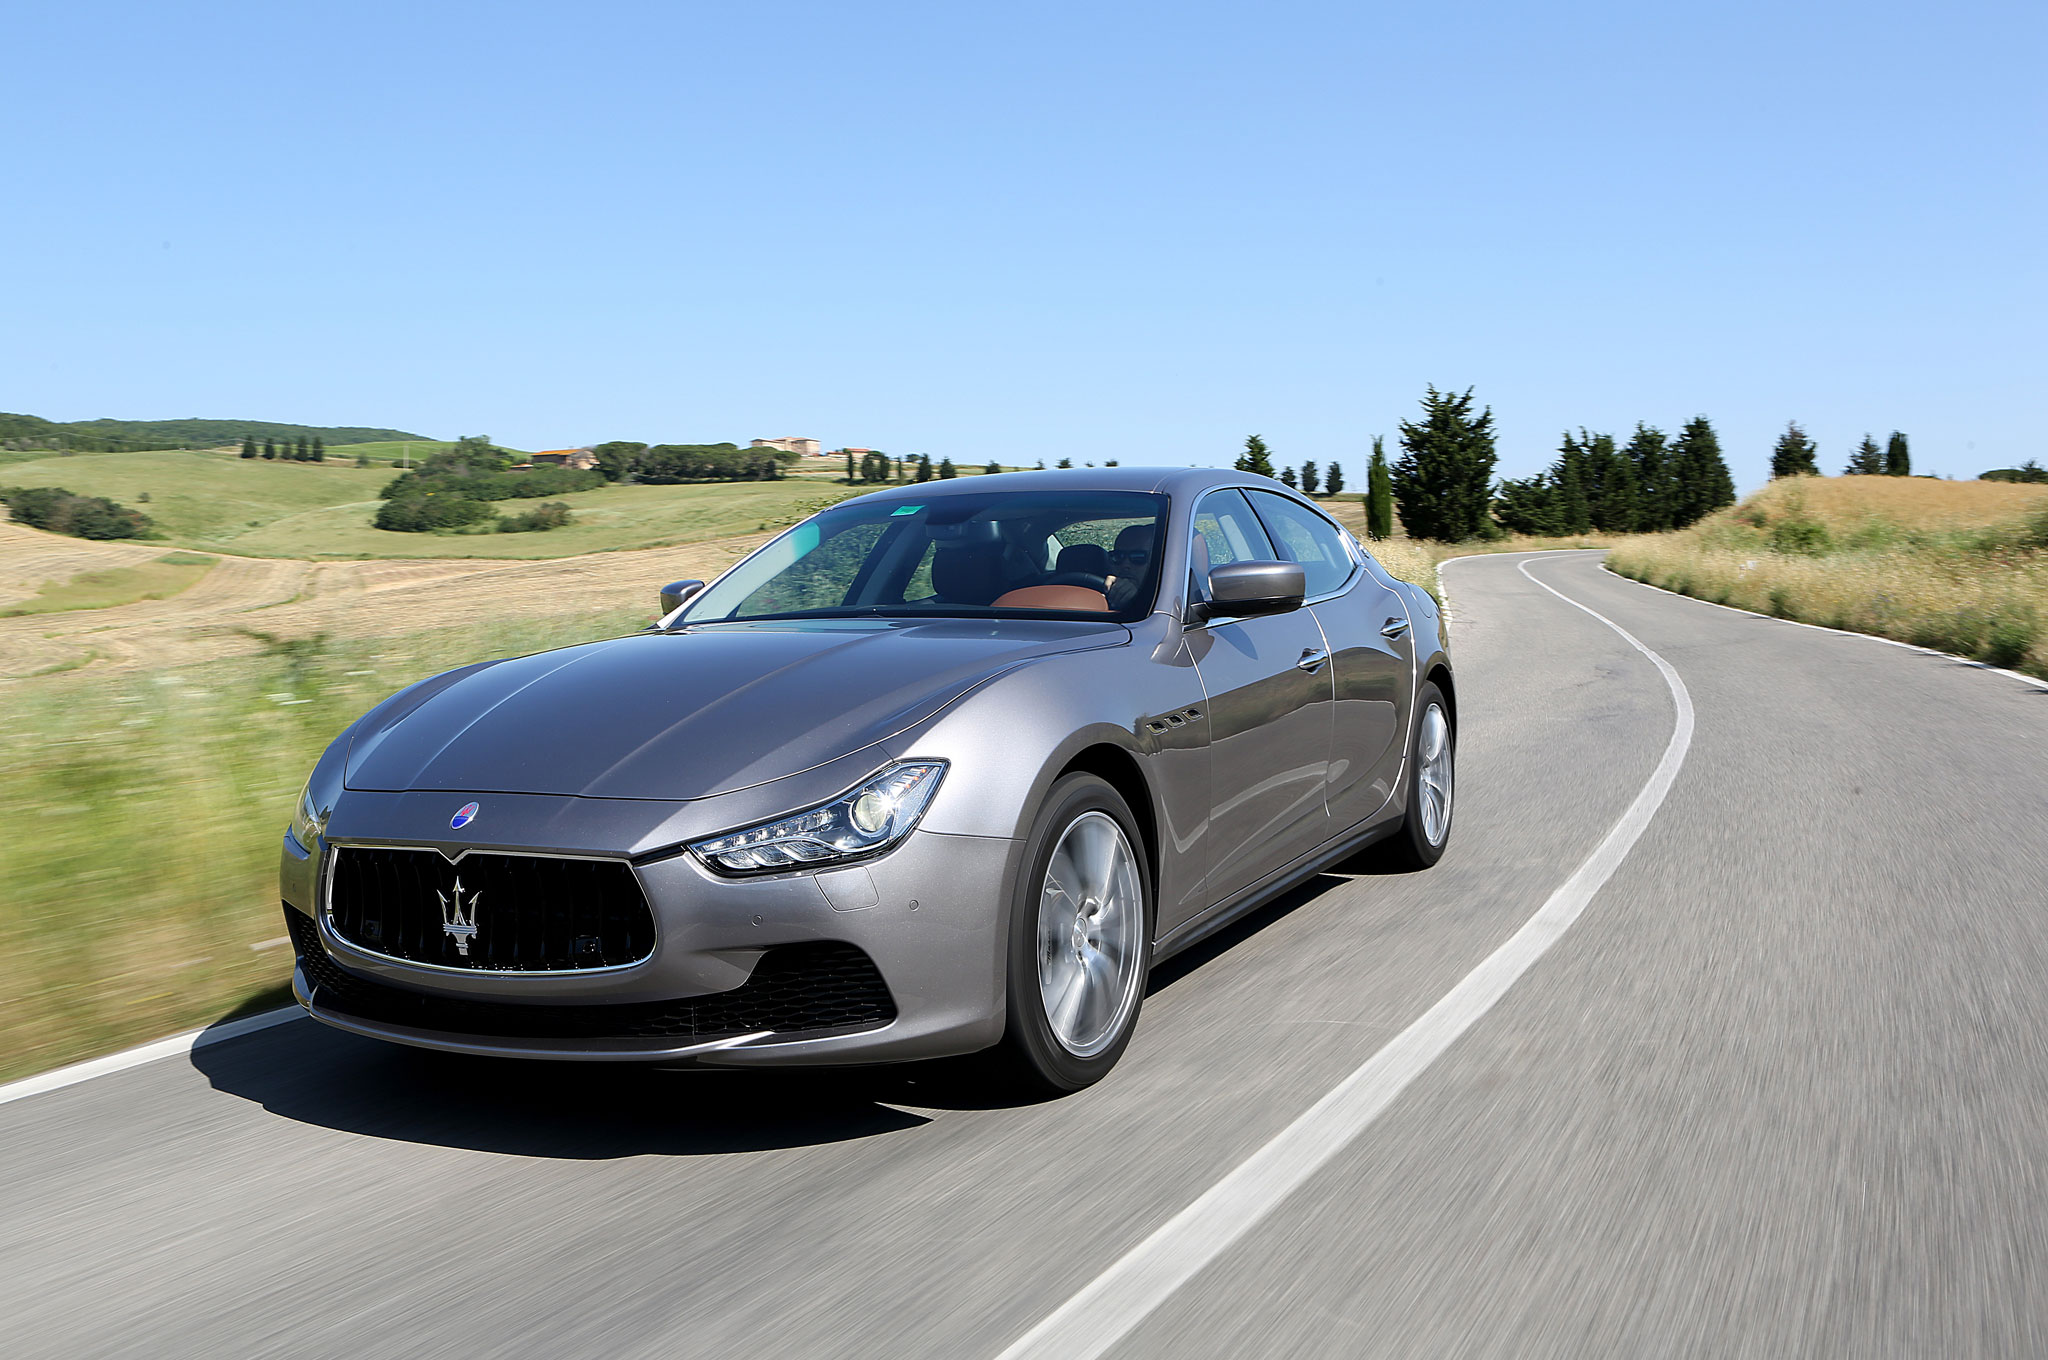 2014 Maserati Ghibli Front Left View 141